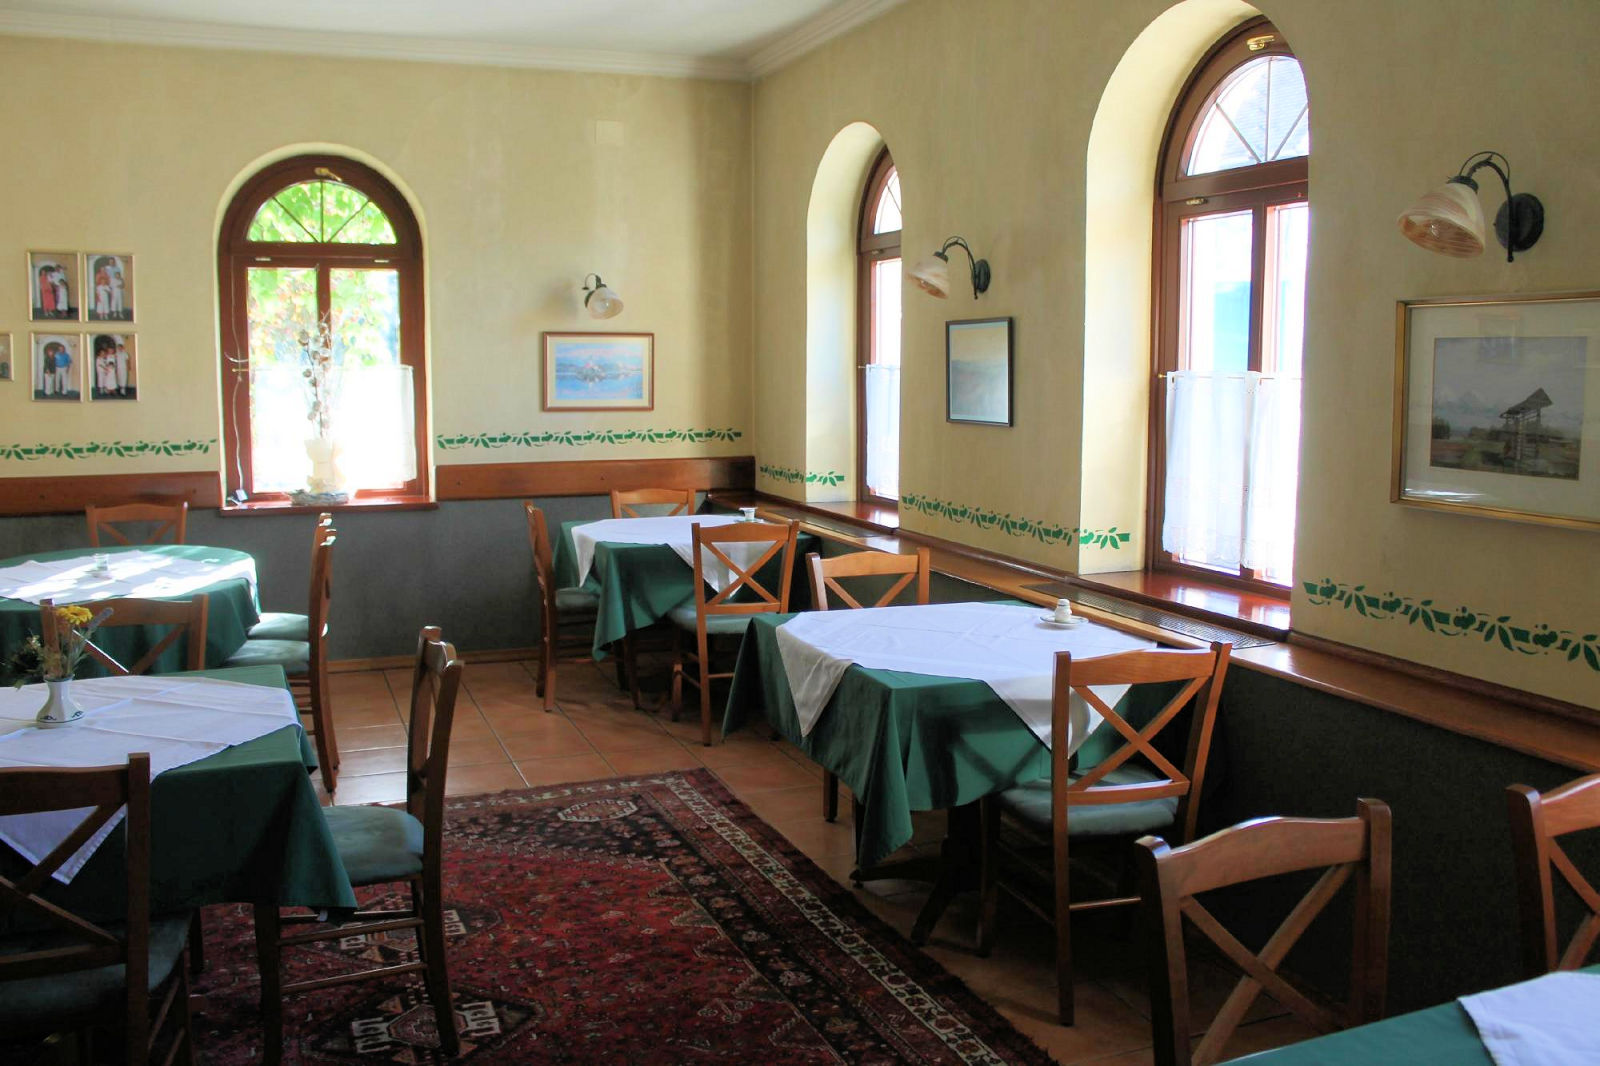 Interior of the Gostilna Union Restaurant and Bar in Lake Bled, Slovenia